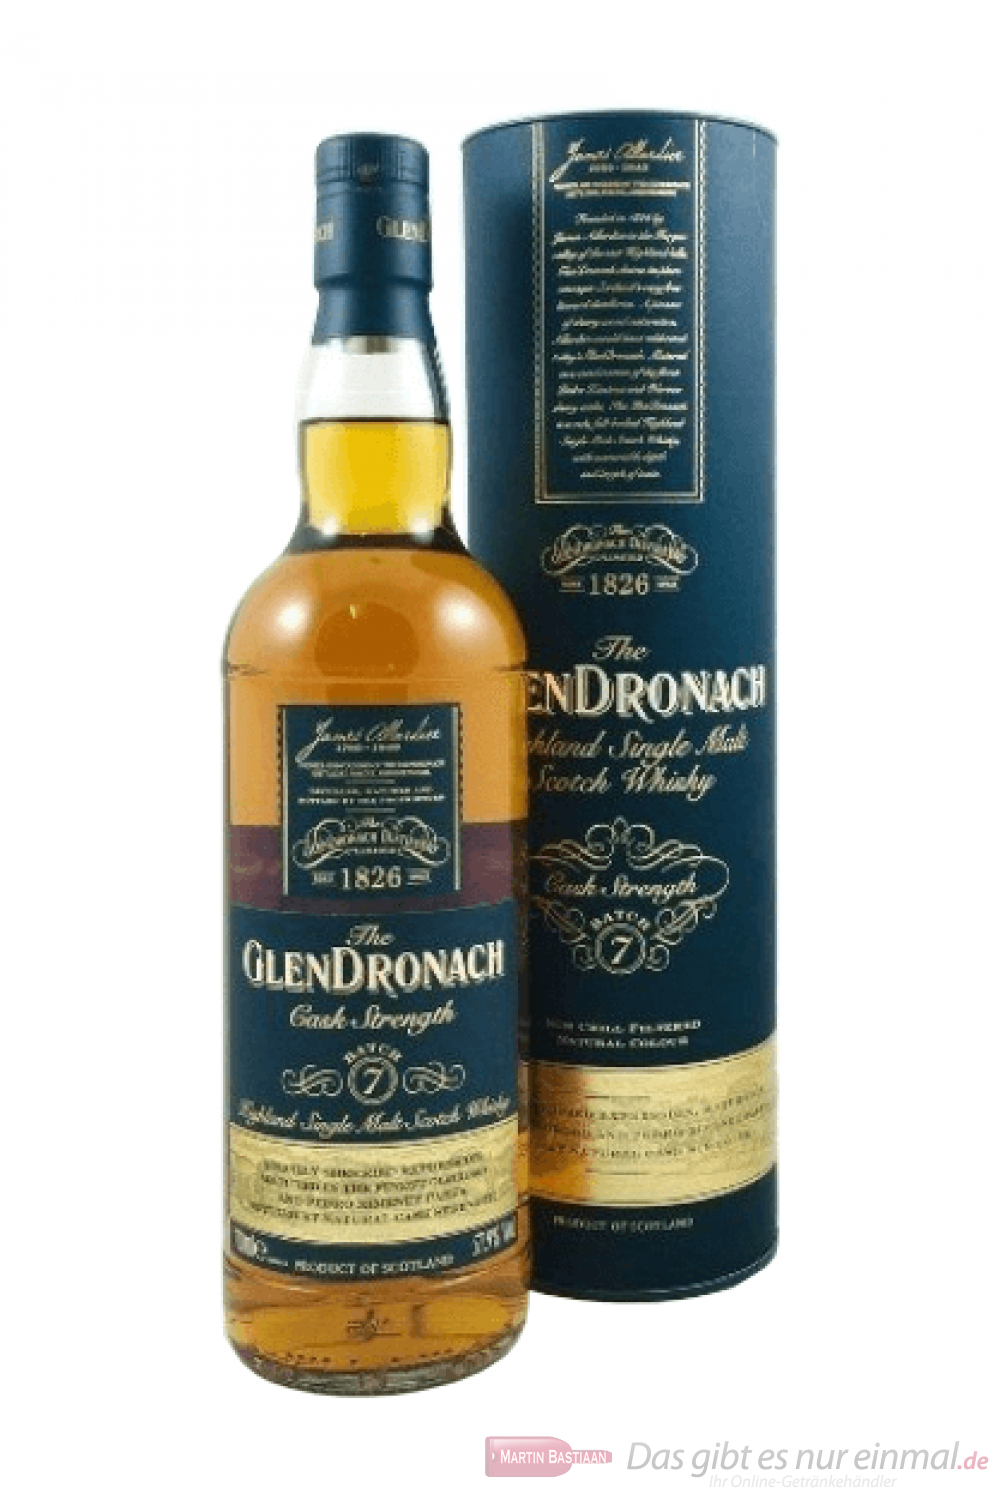 Glendronach Cask Strength Batch No. 7